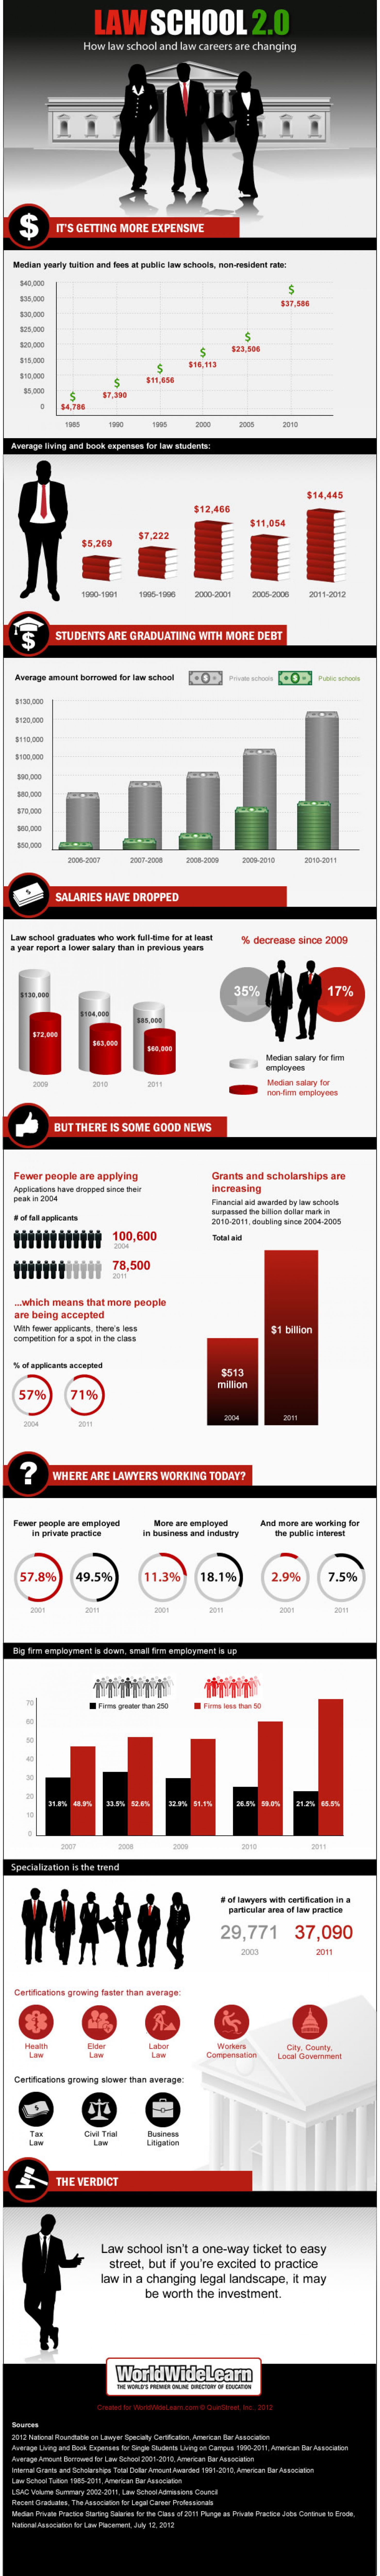 Law School 2.0 Infographic